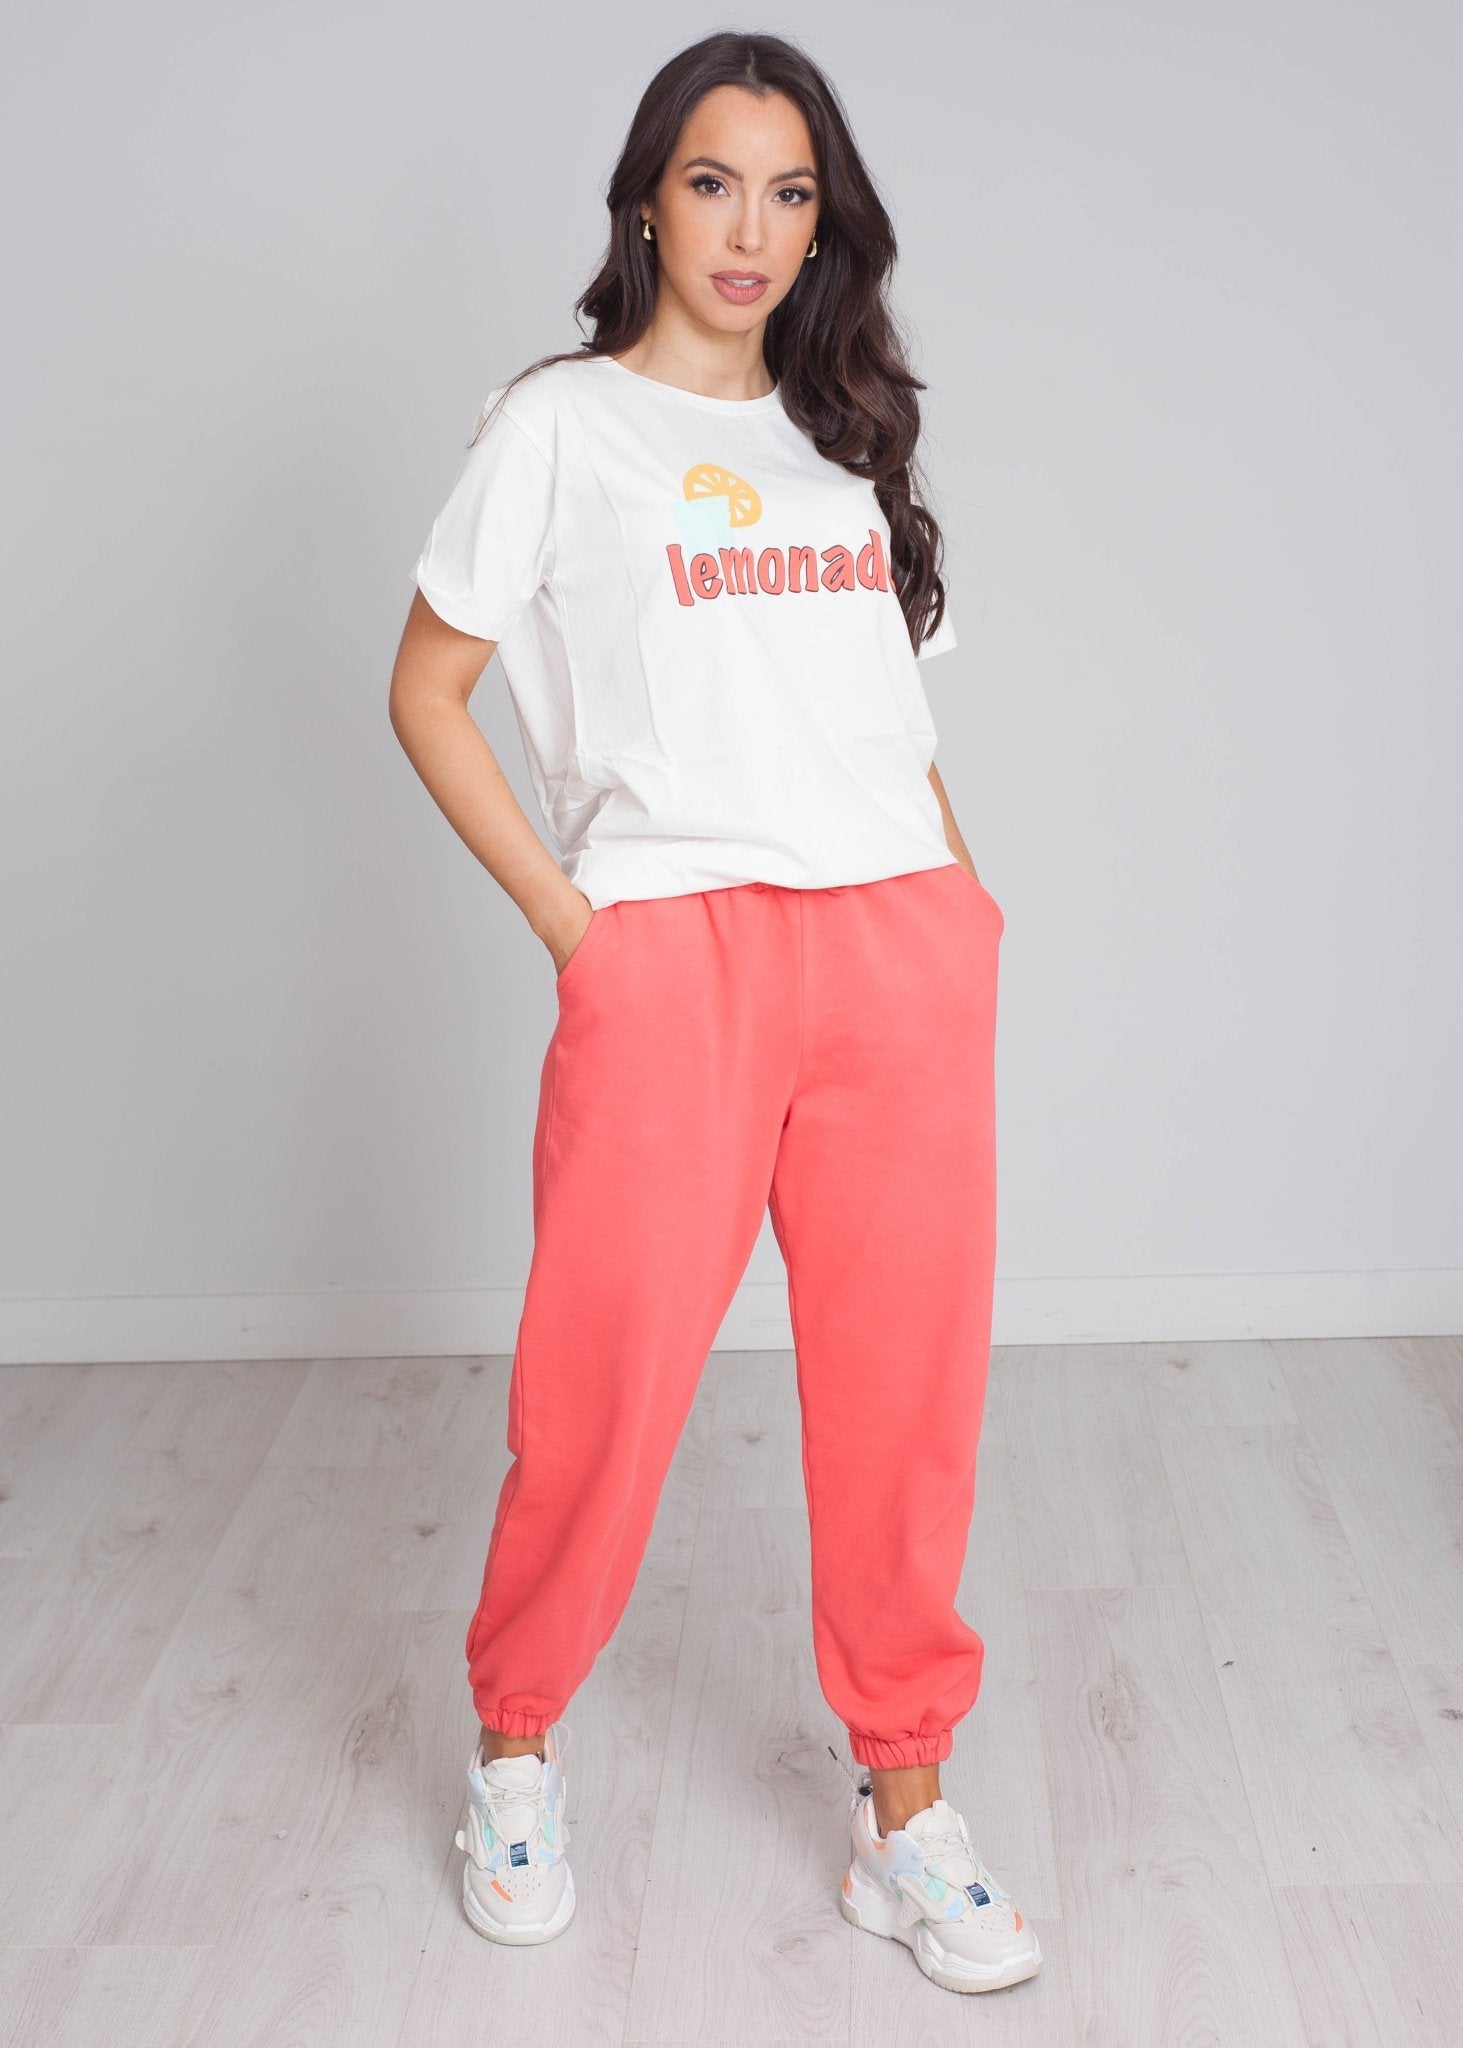 Laura Joggers In Coral - The Walk in Wardrobe